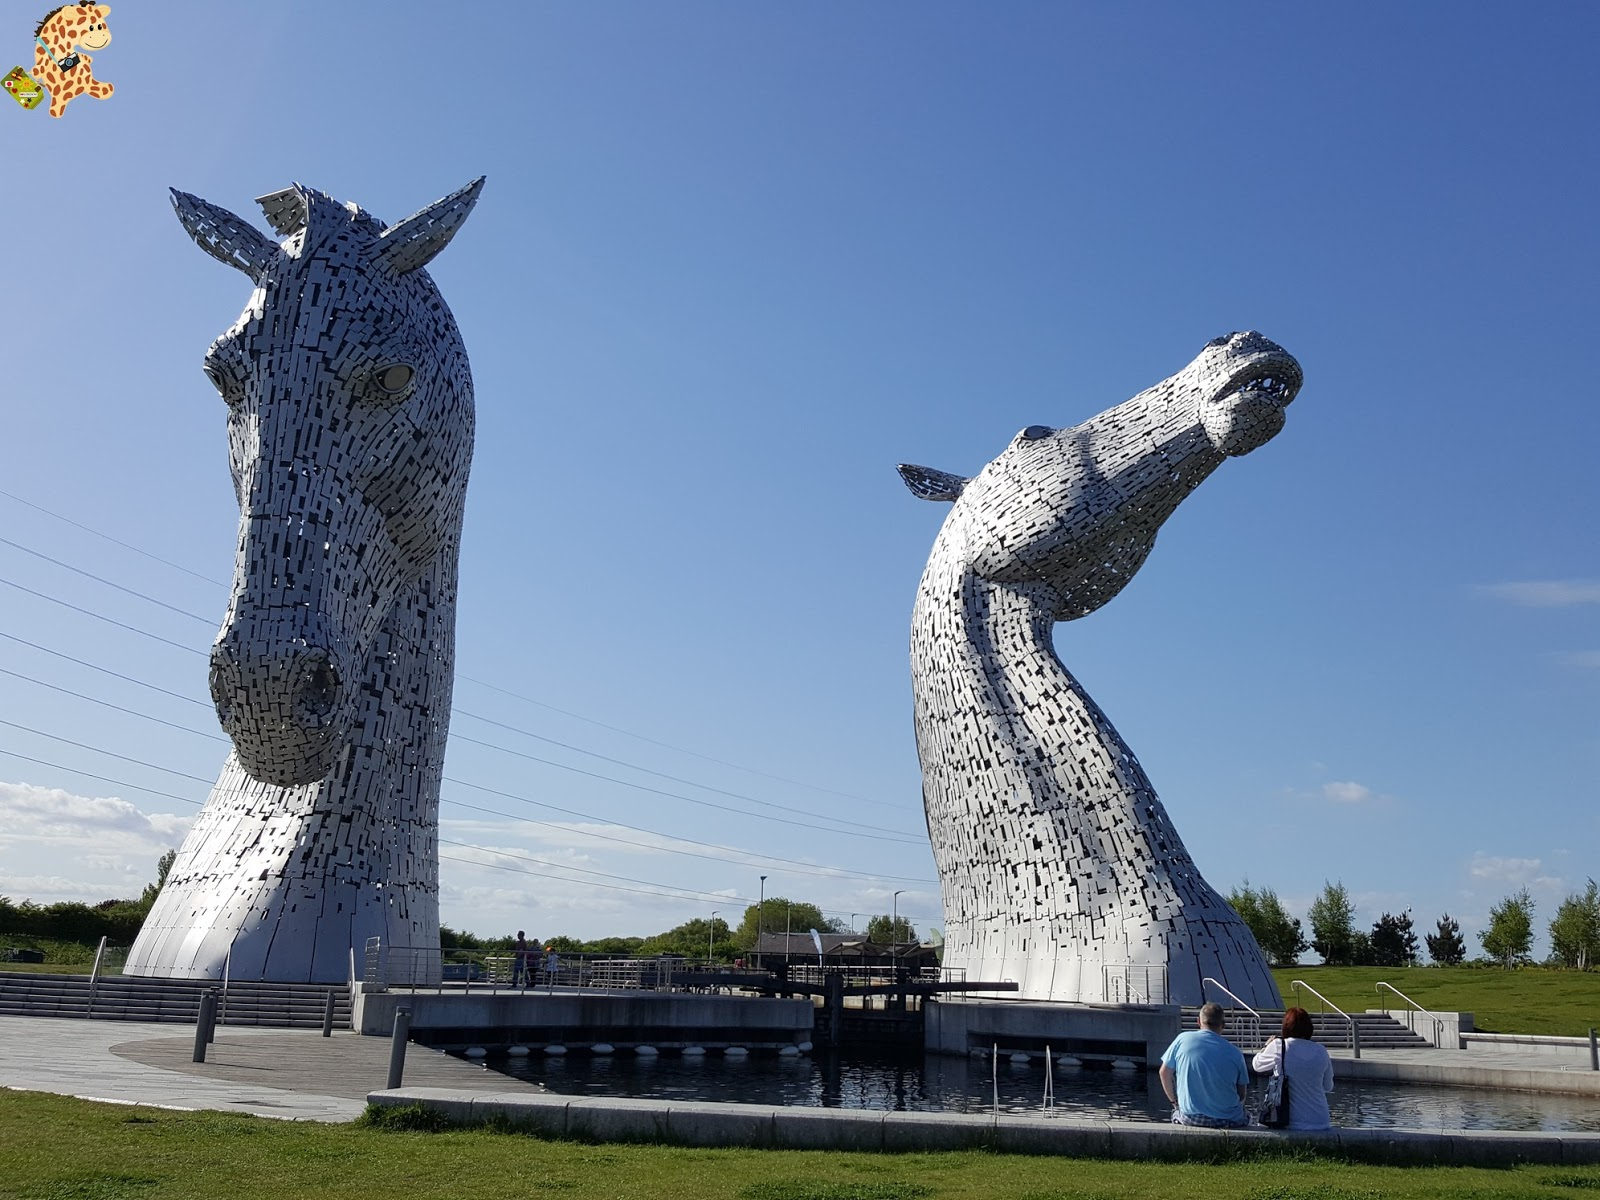 Excursiones desde Glasgow y Edimburgo